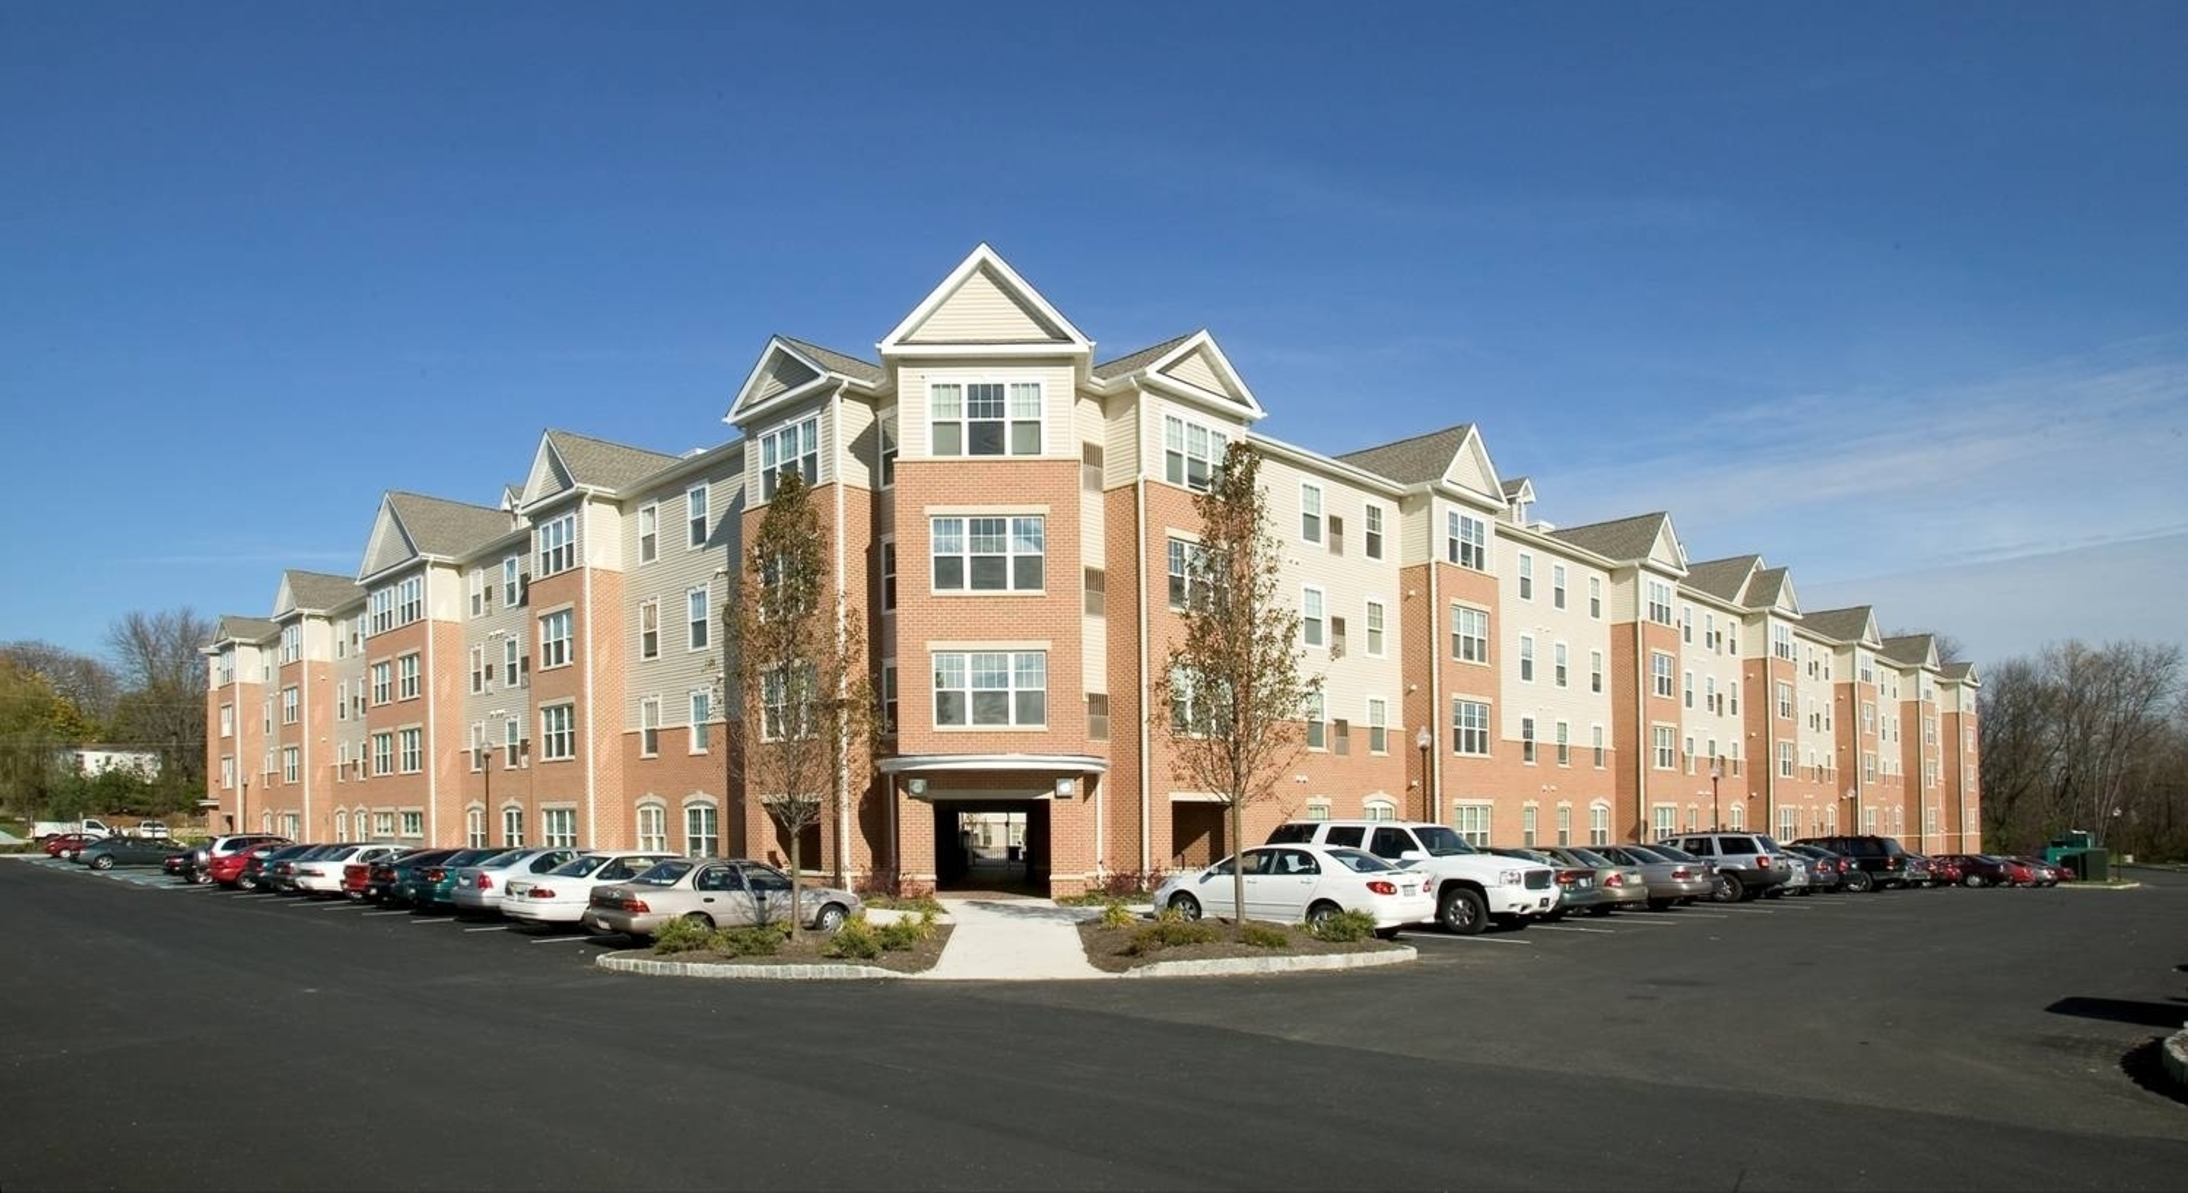 College sublease, college student housing near west-chester , west-chester off campus lofts